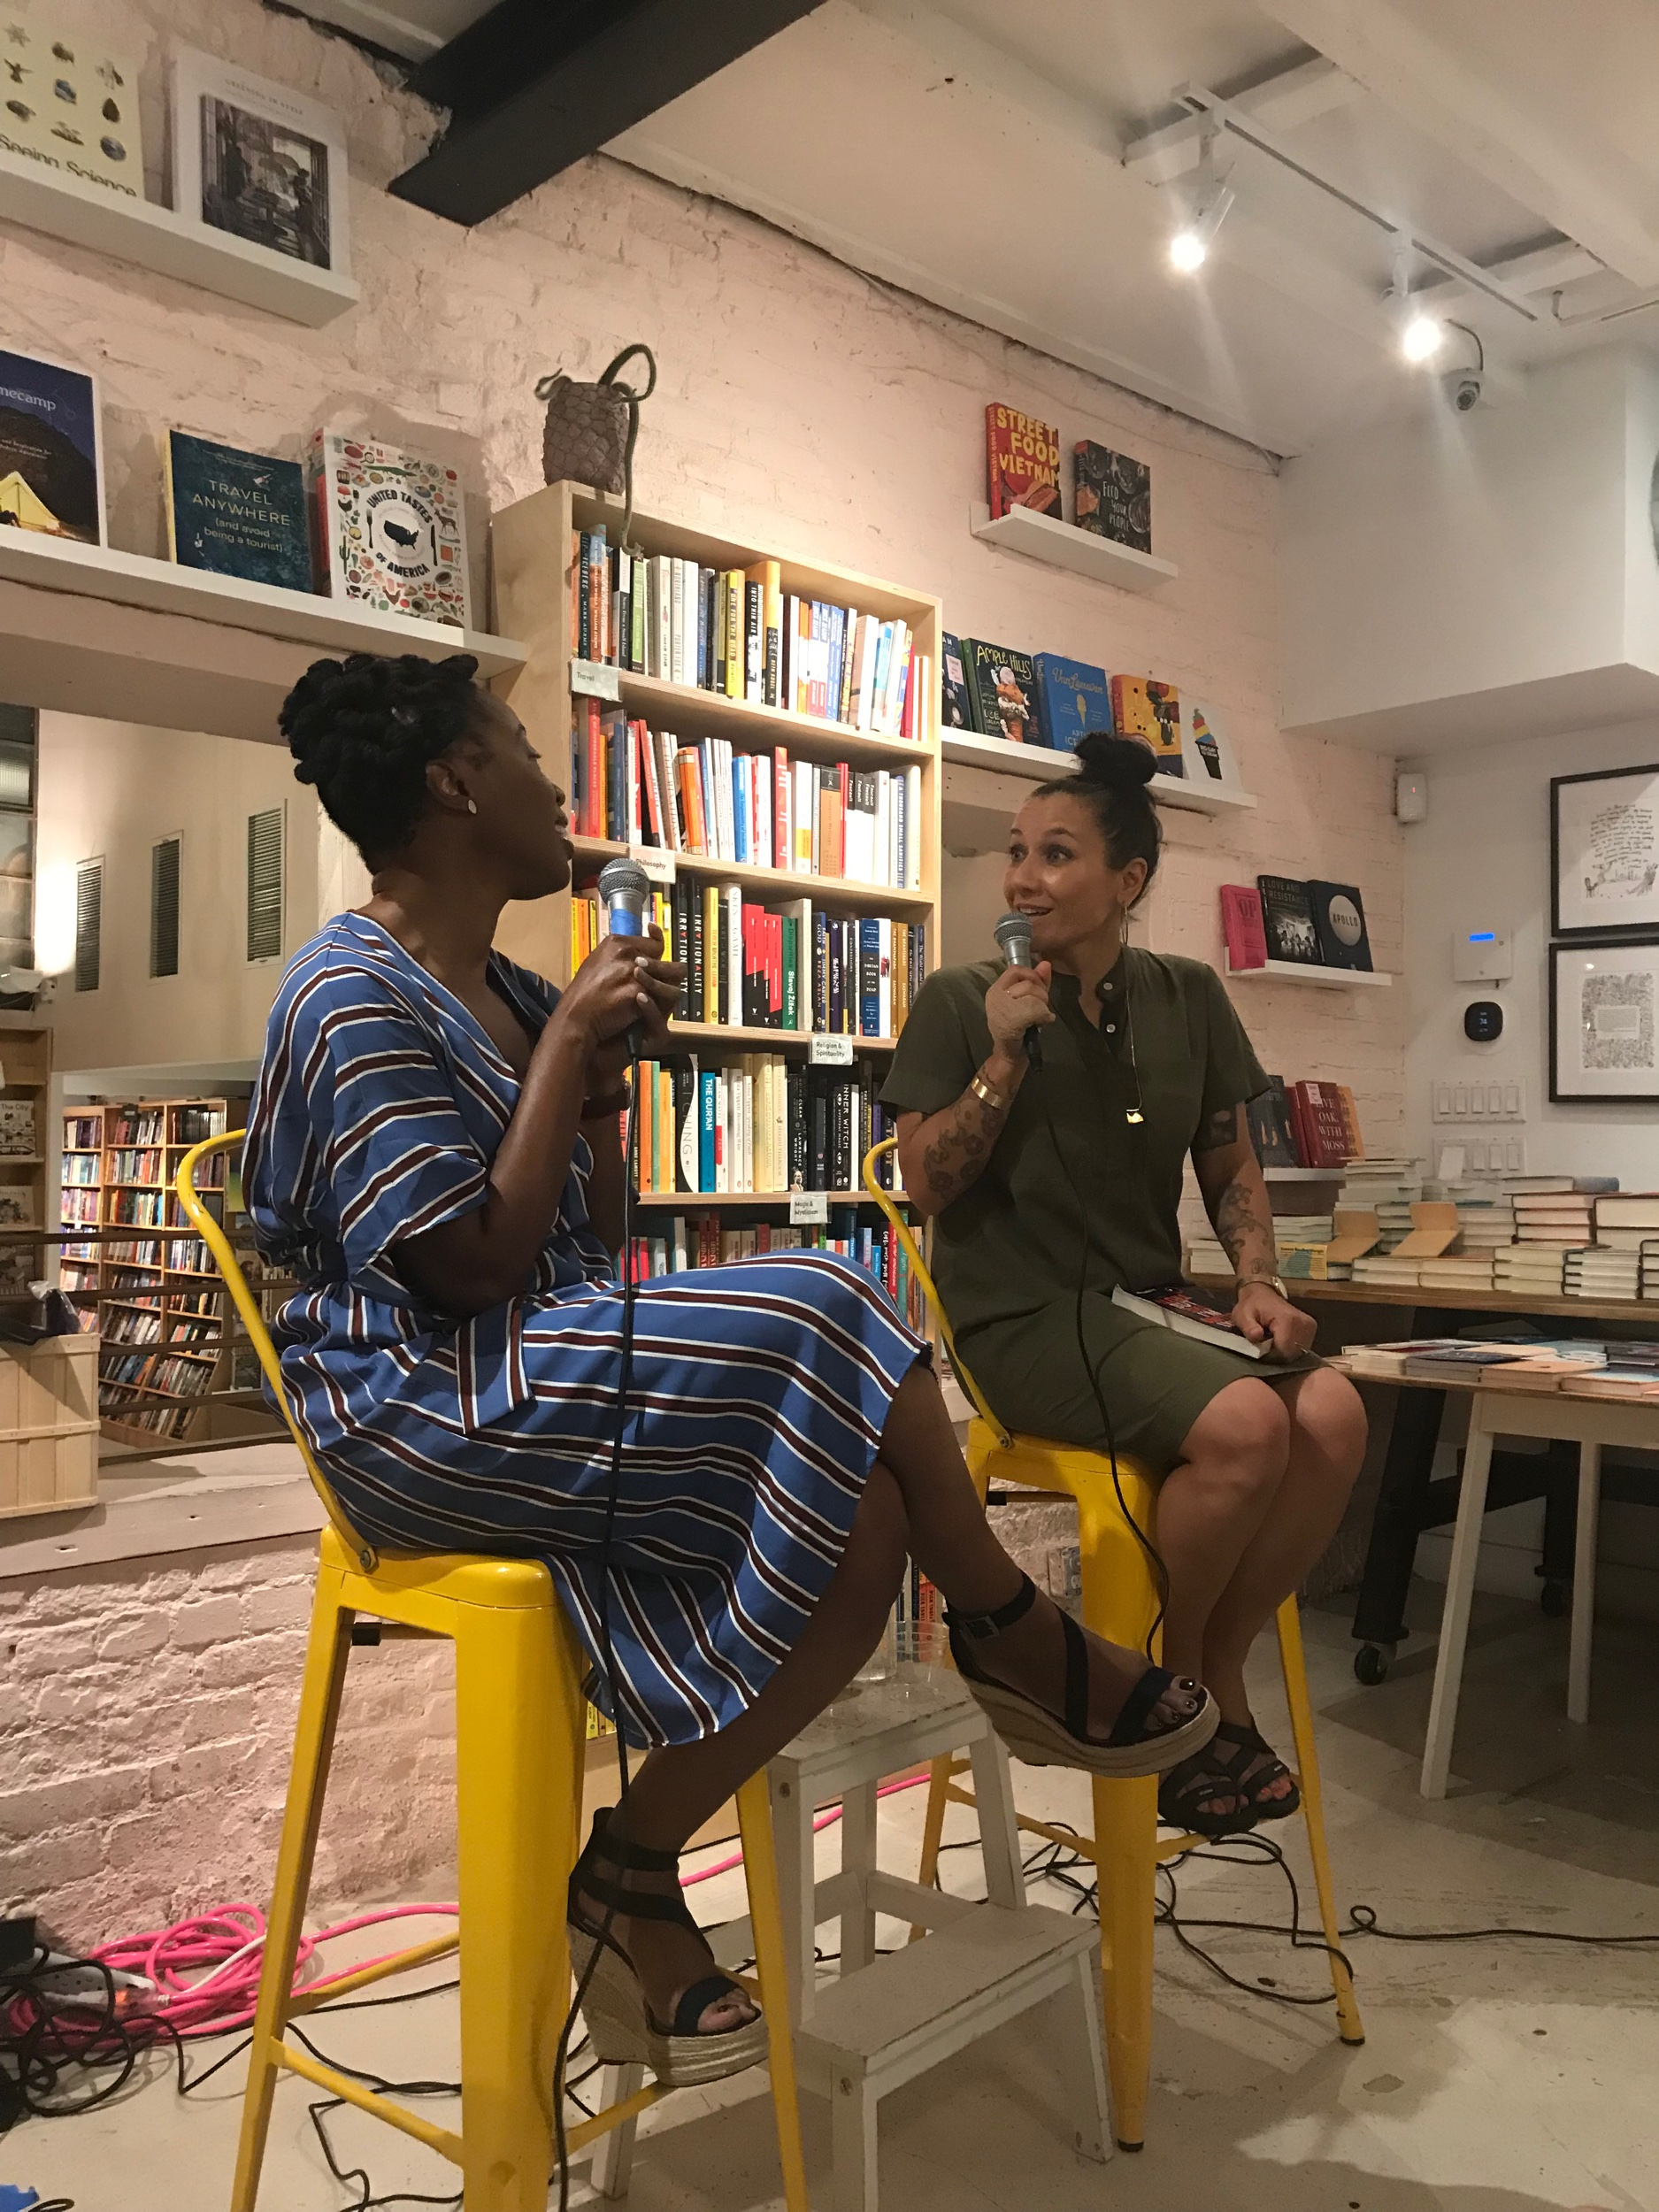 Bassey Ikpi and Melissa Febos in conversation at Books Are Magic in Brooklyn on August 21st. Photo Credit: Storm Jenkins